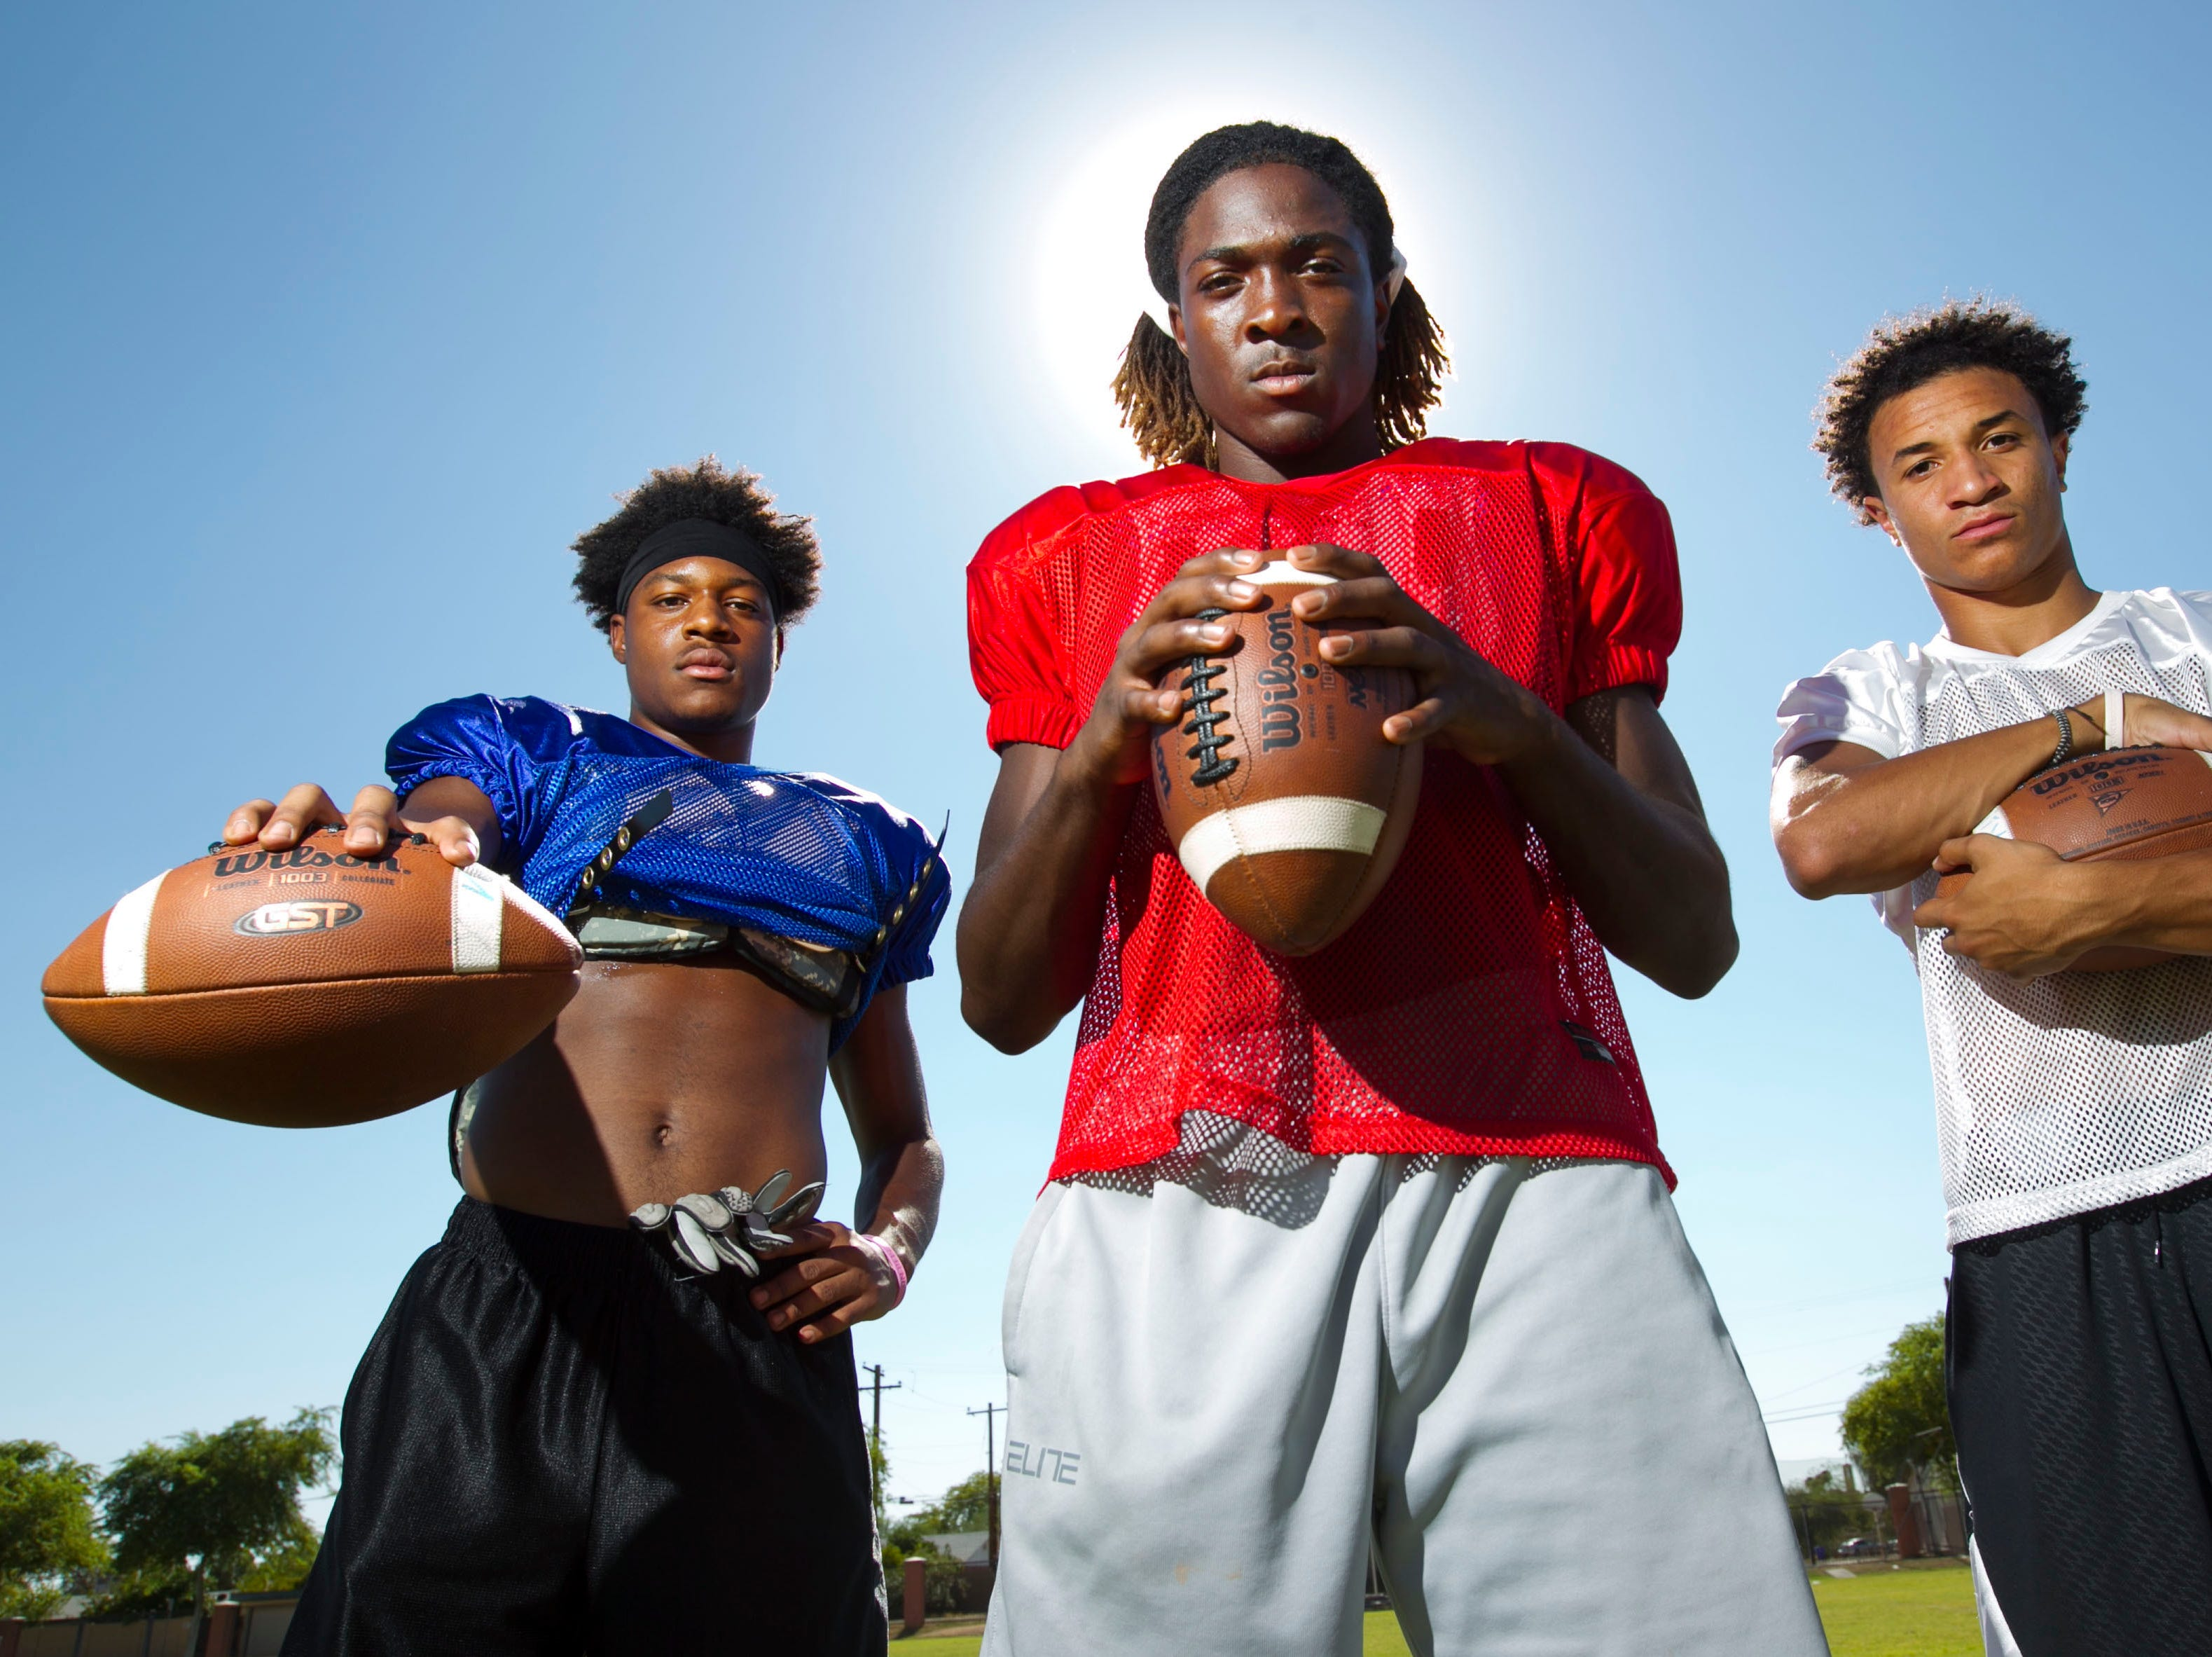 Chandler High football players (from left) N'Keal Harry, Bryce Perkins and Chase Lucas will lead the Wolves this season.